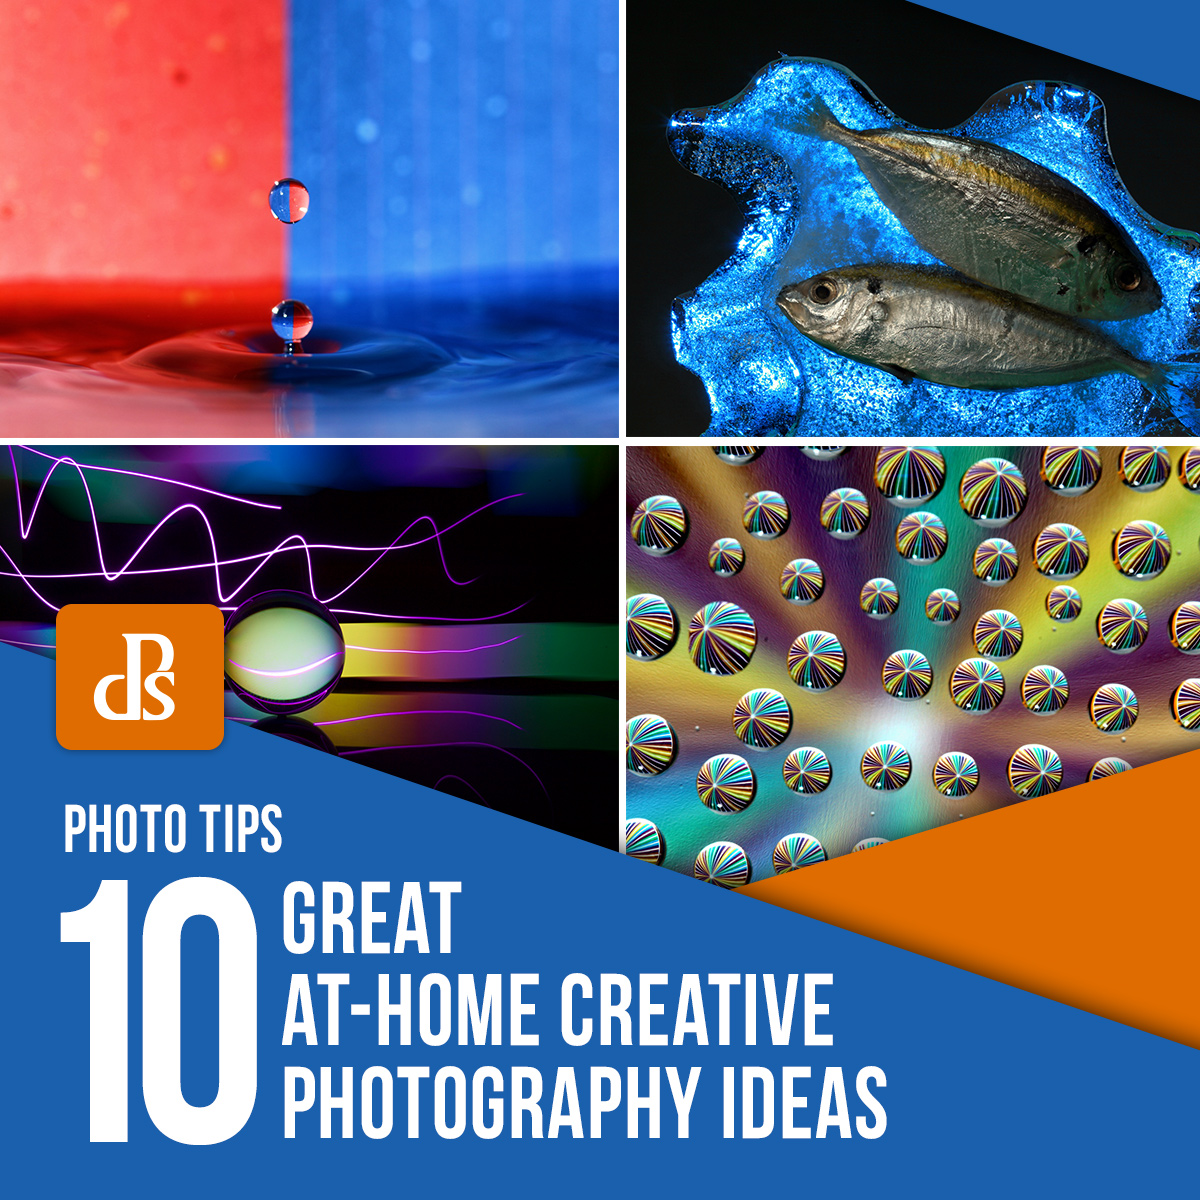 at-home creative photography ideas